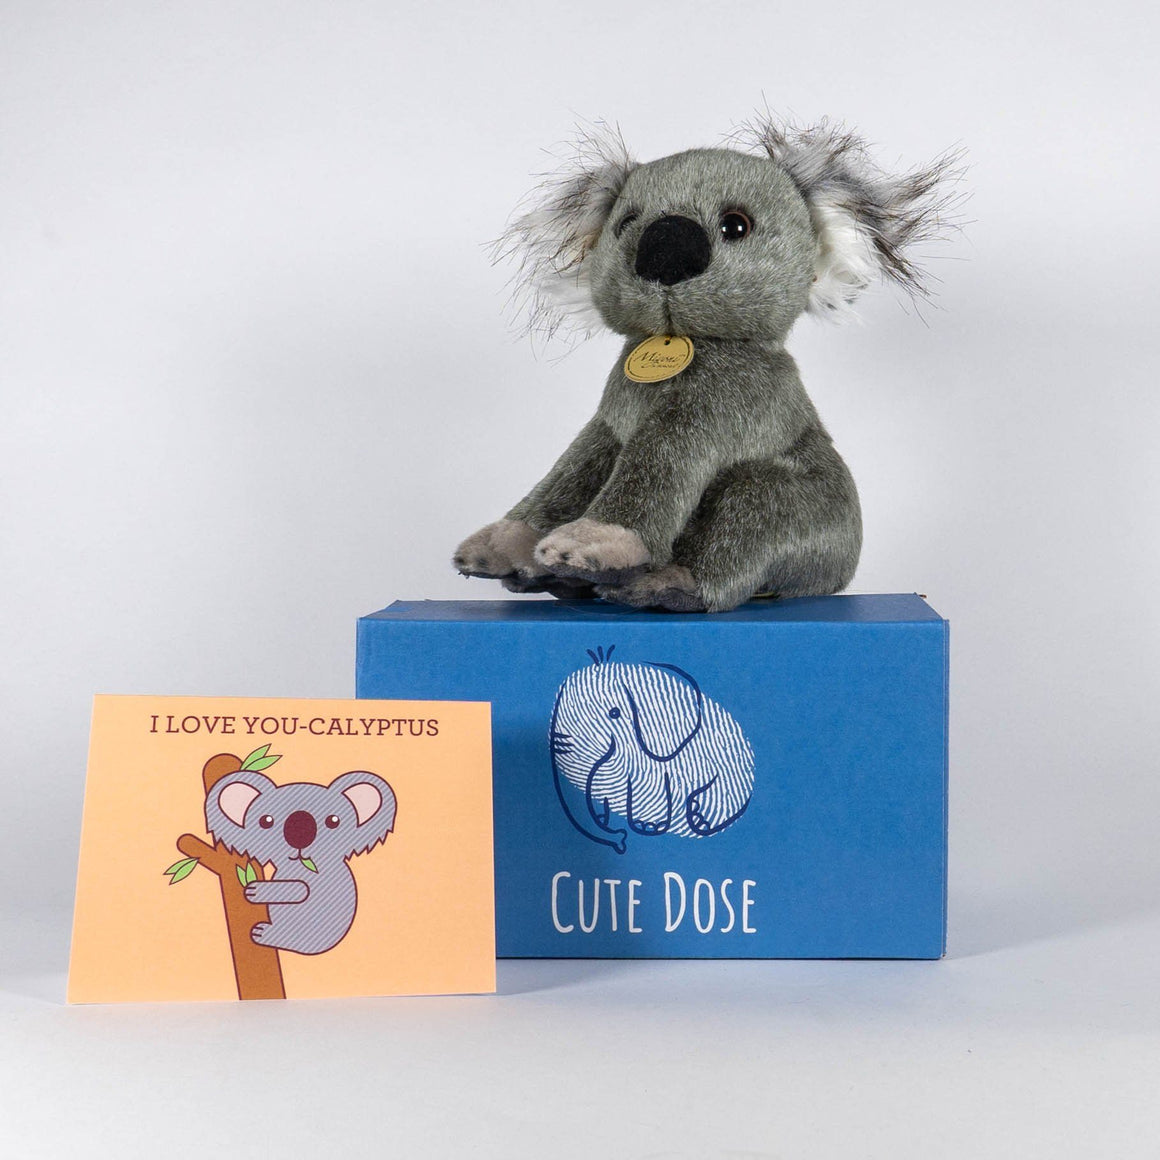 Koala Care Package - Cute Dose